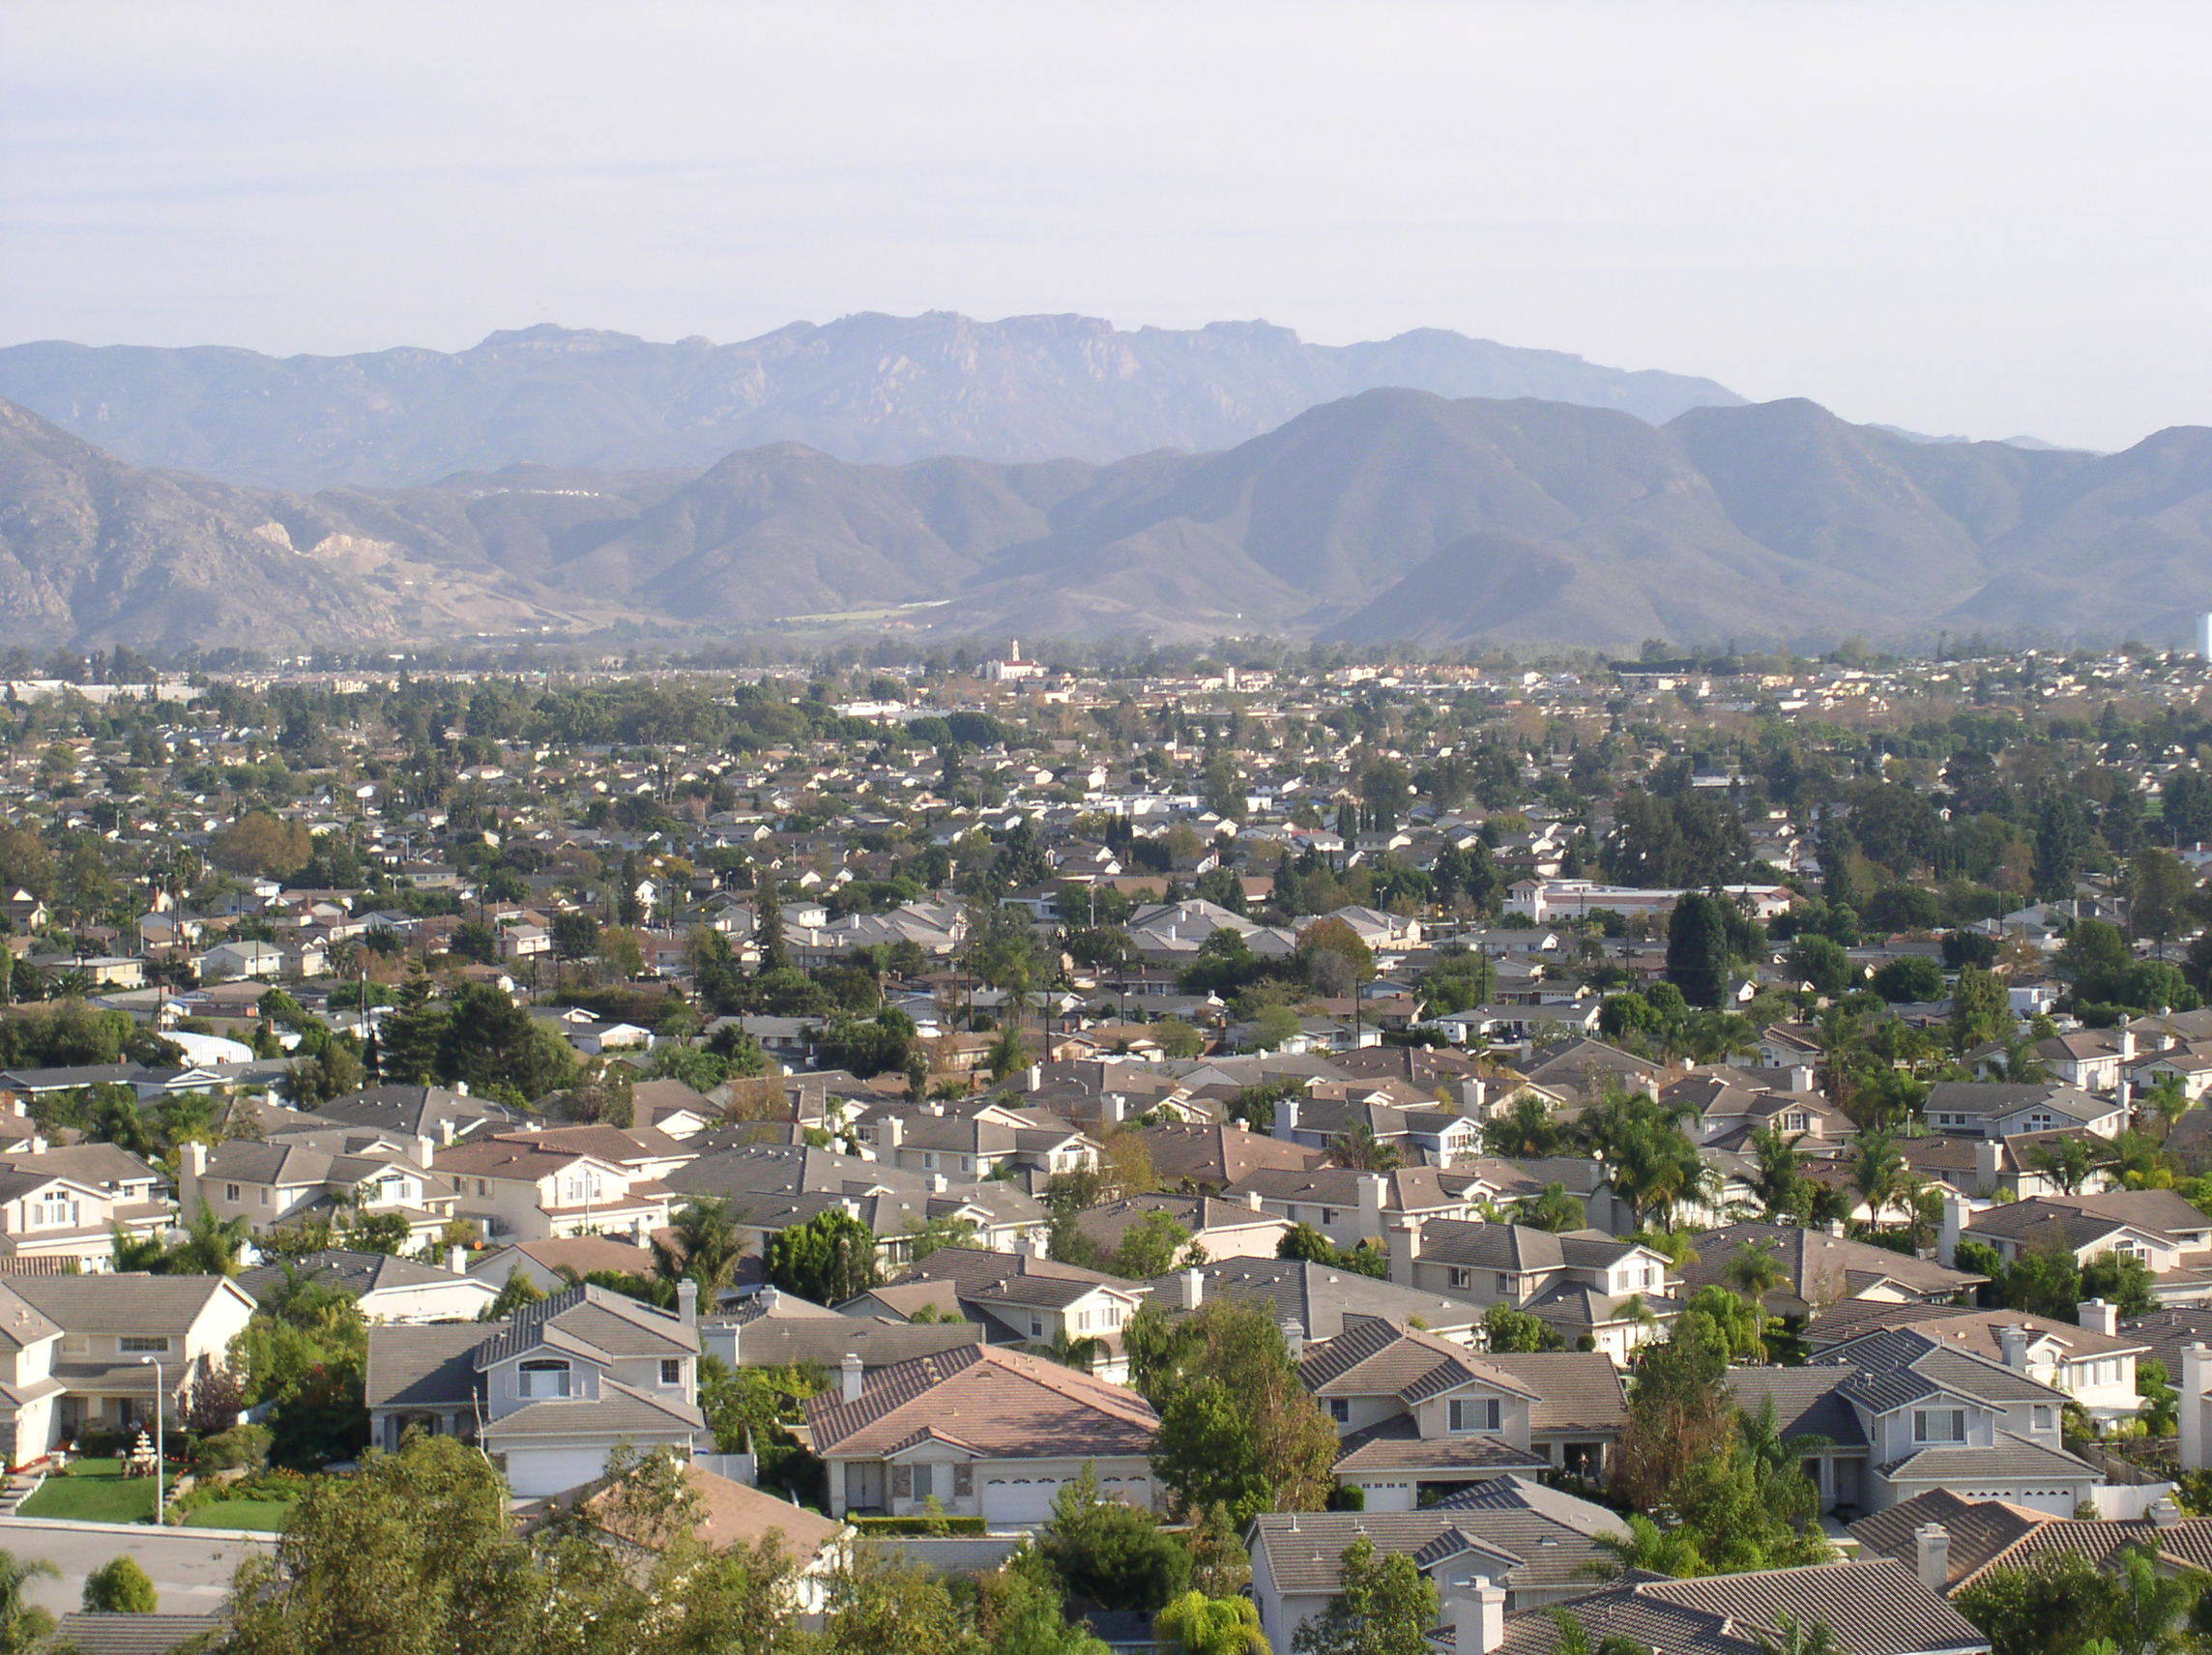 The City of Camarillo